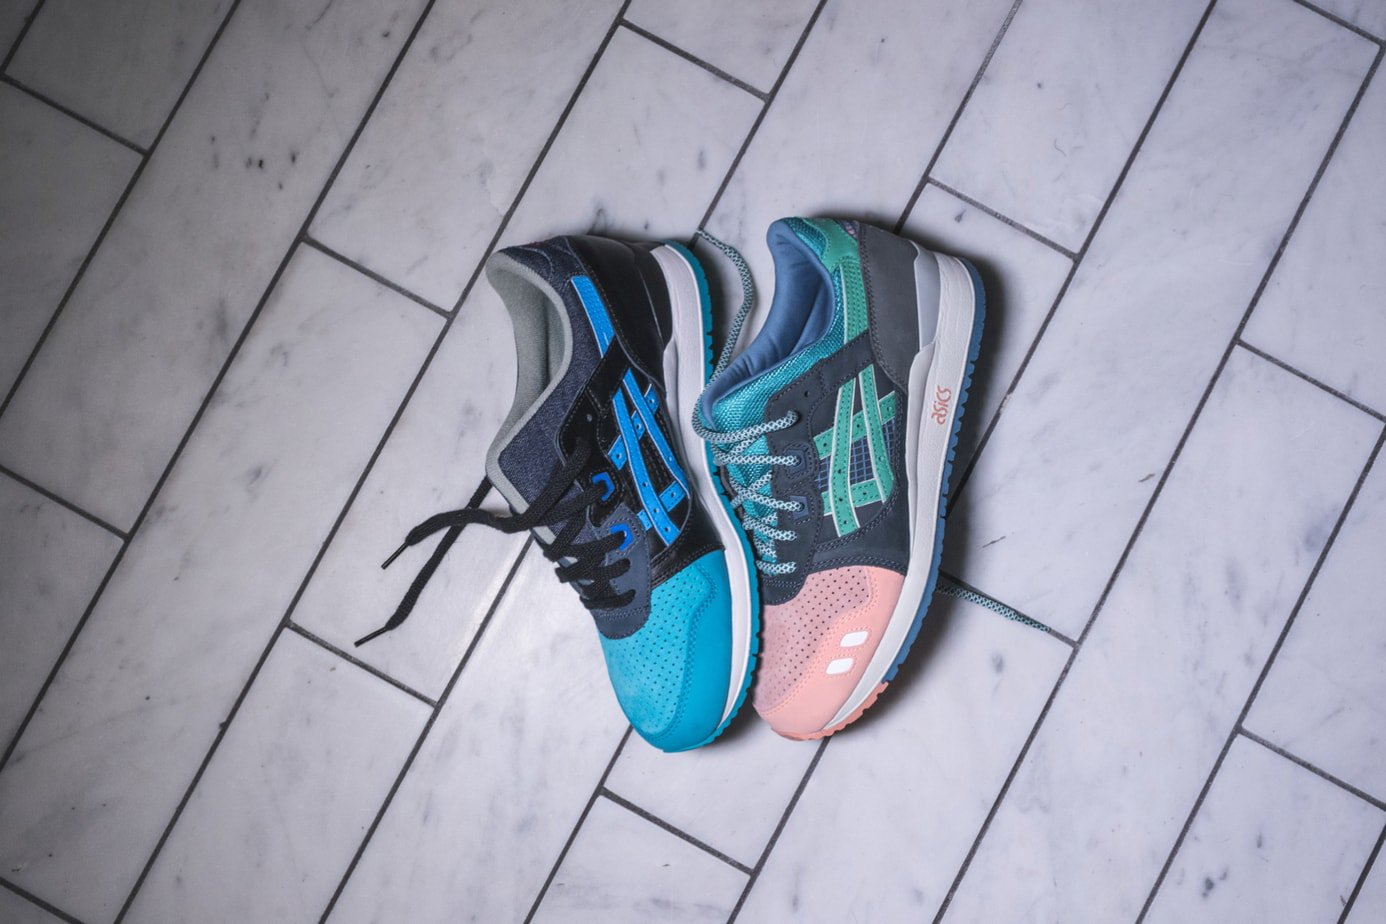 asics cove gel lyte 3 homage